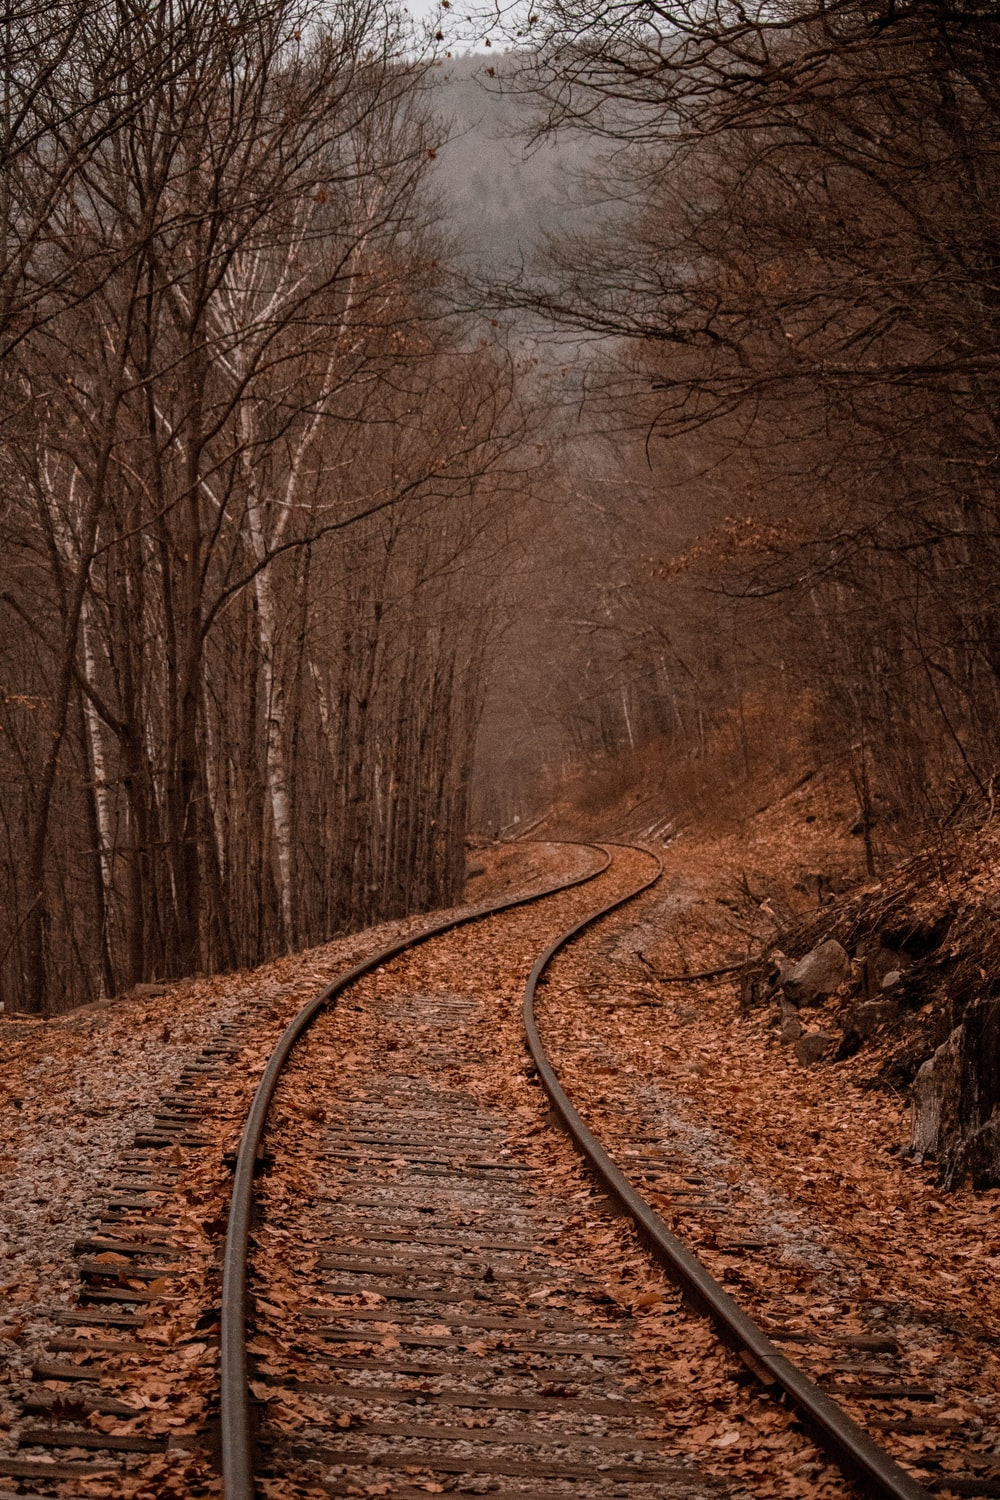 landscape photography of train rails between forest